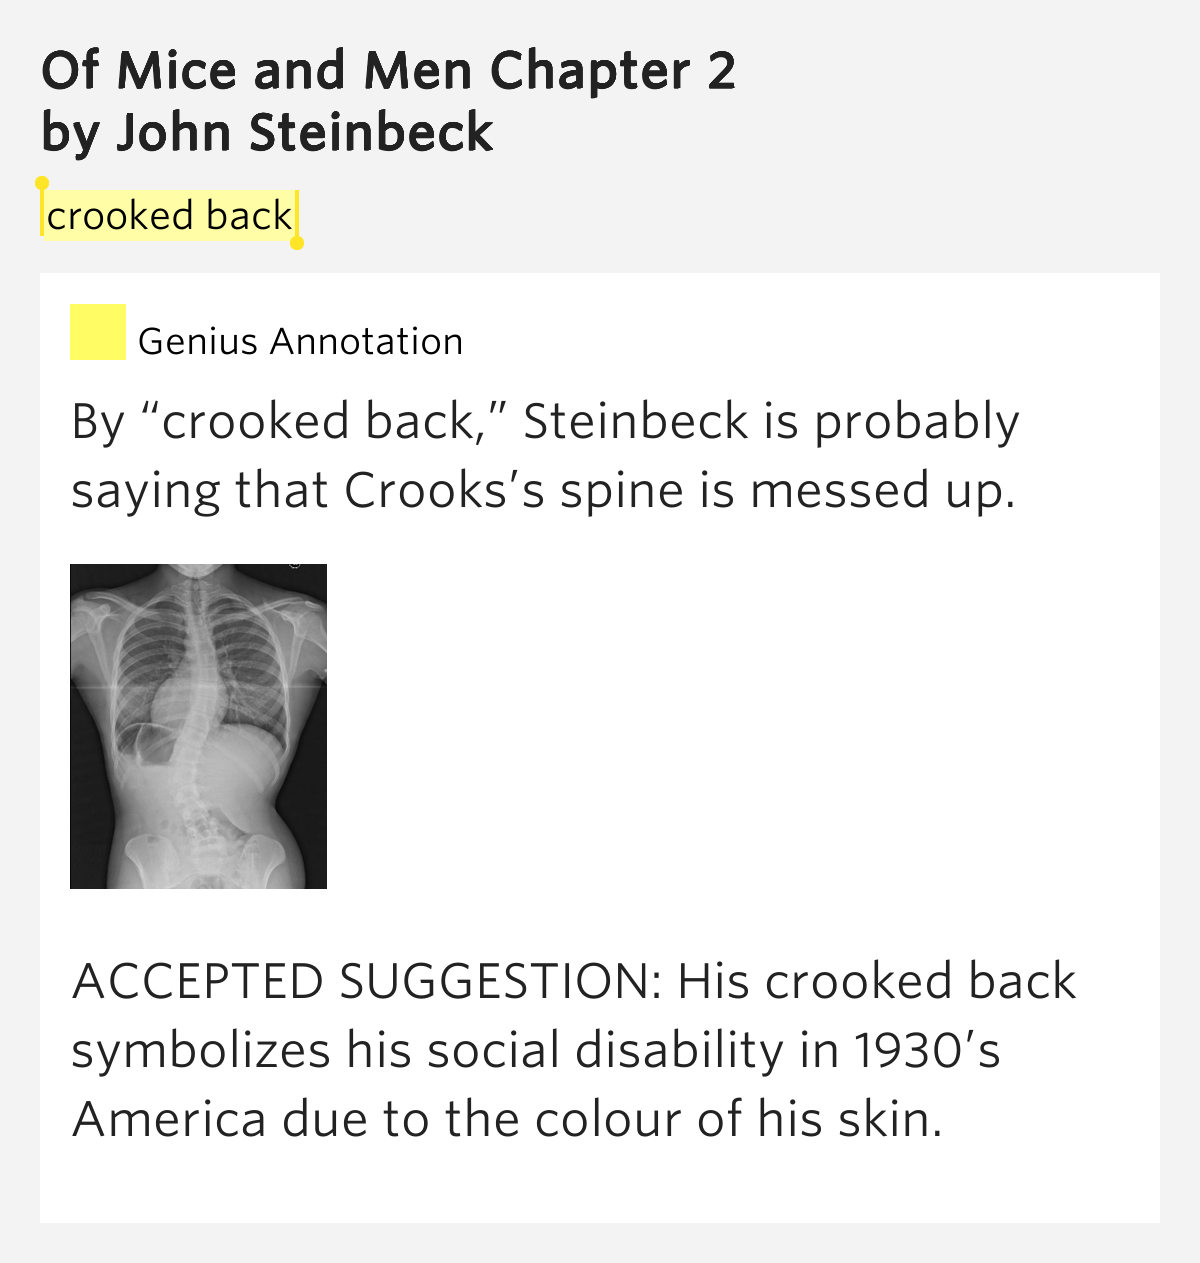 of mice and men chapter